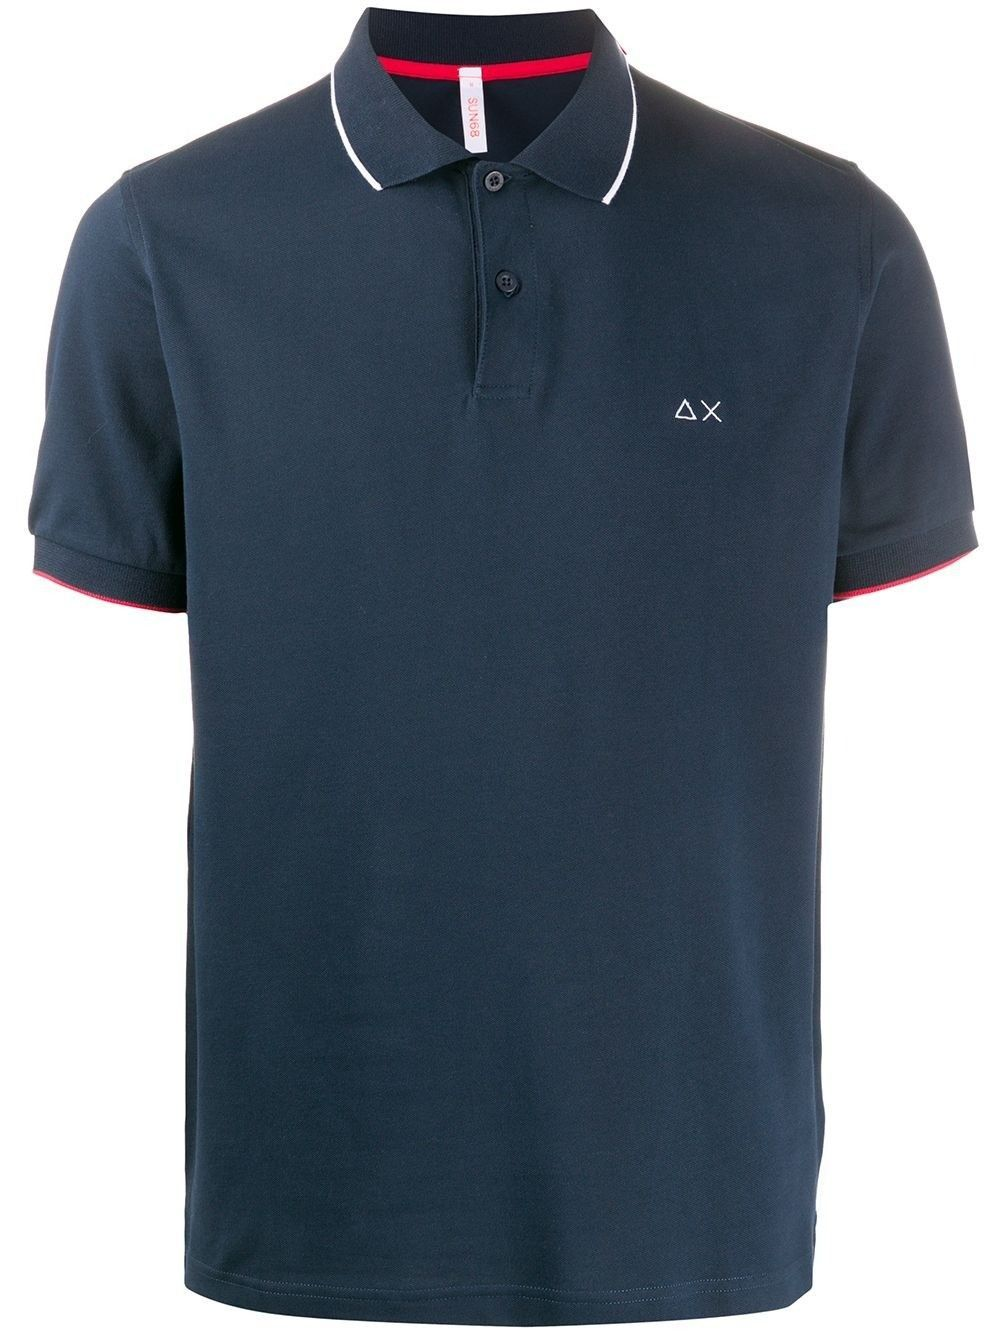 SUN 68 MEN'S A3010607 BLUE COTTON POLO SHIRT